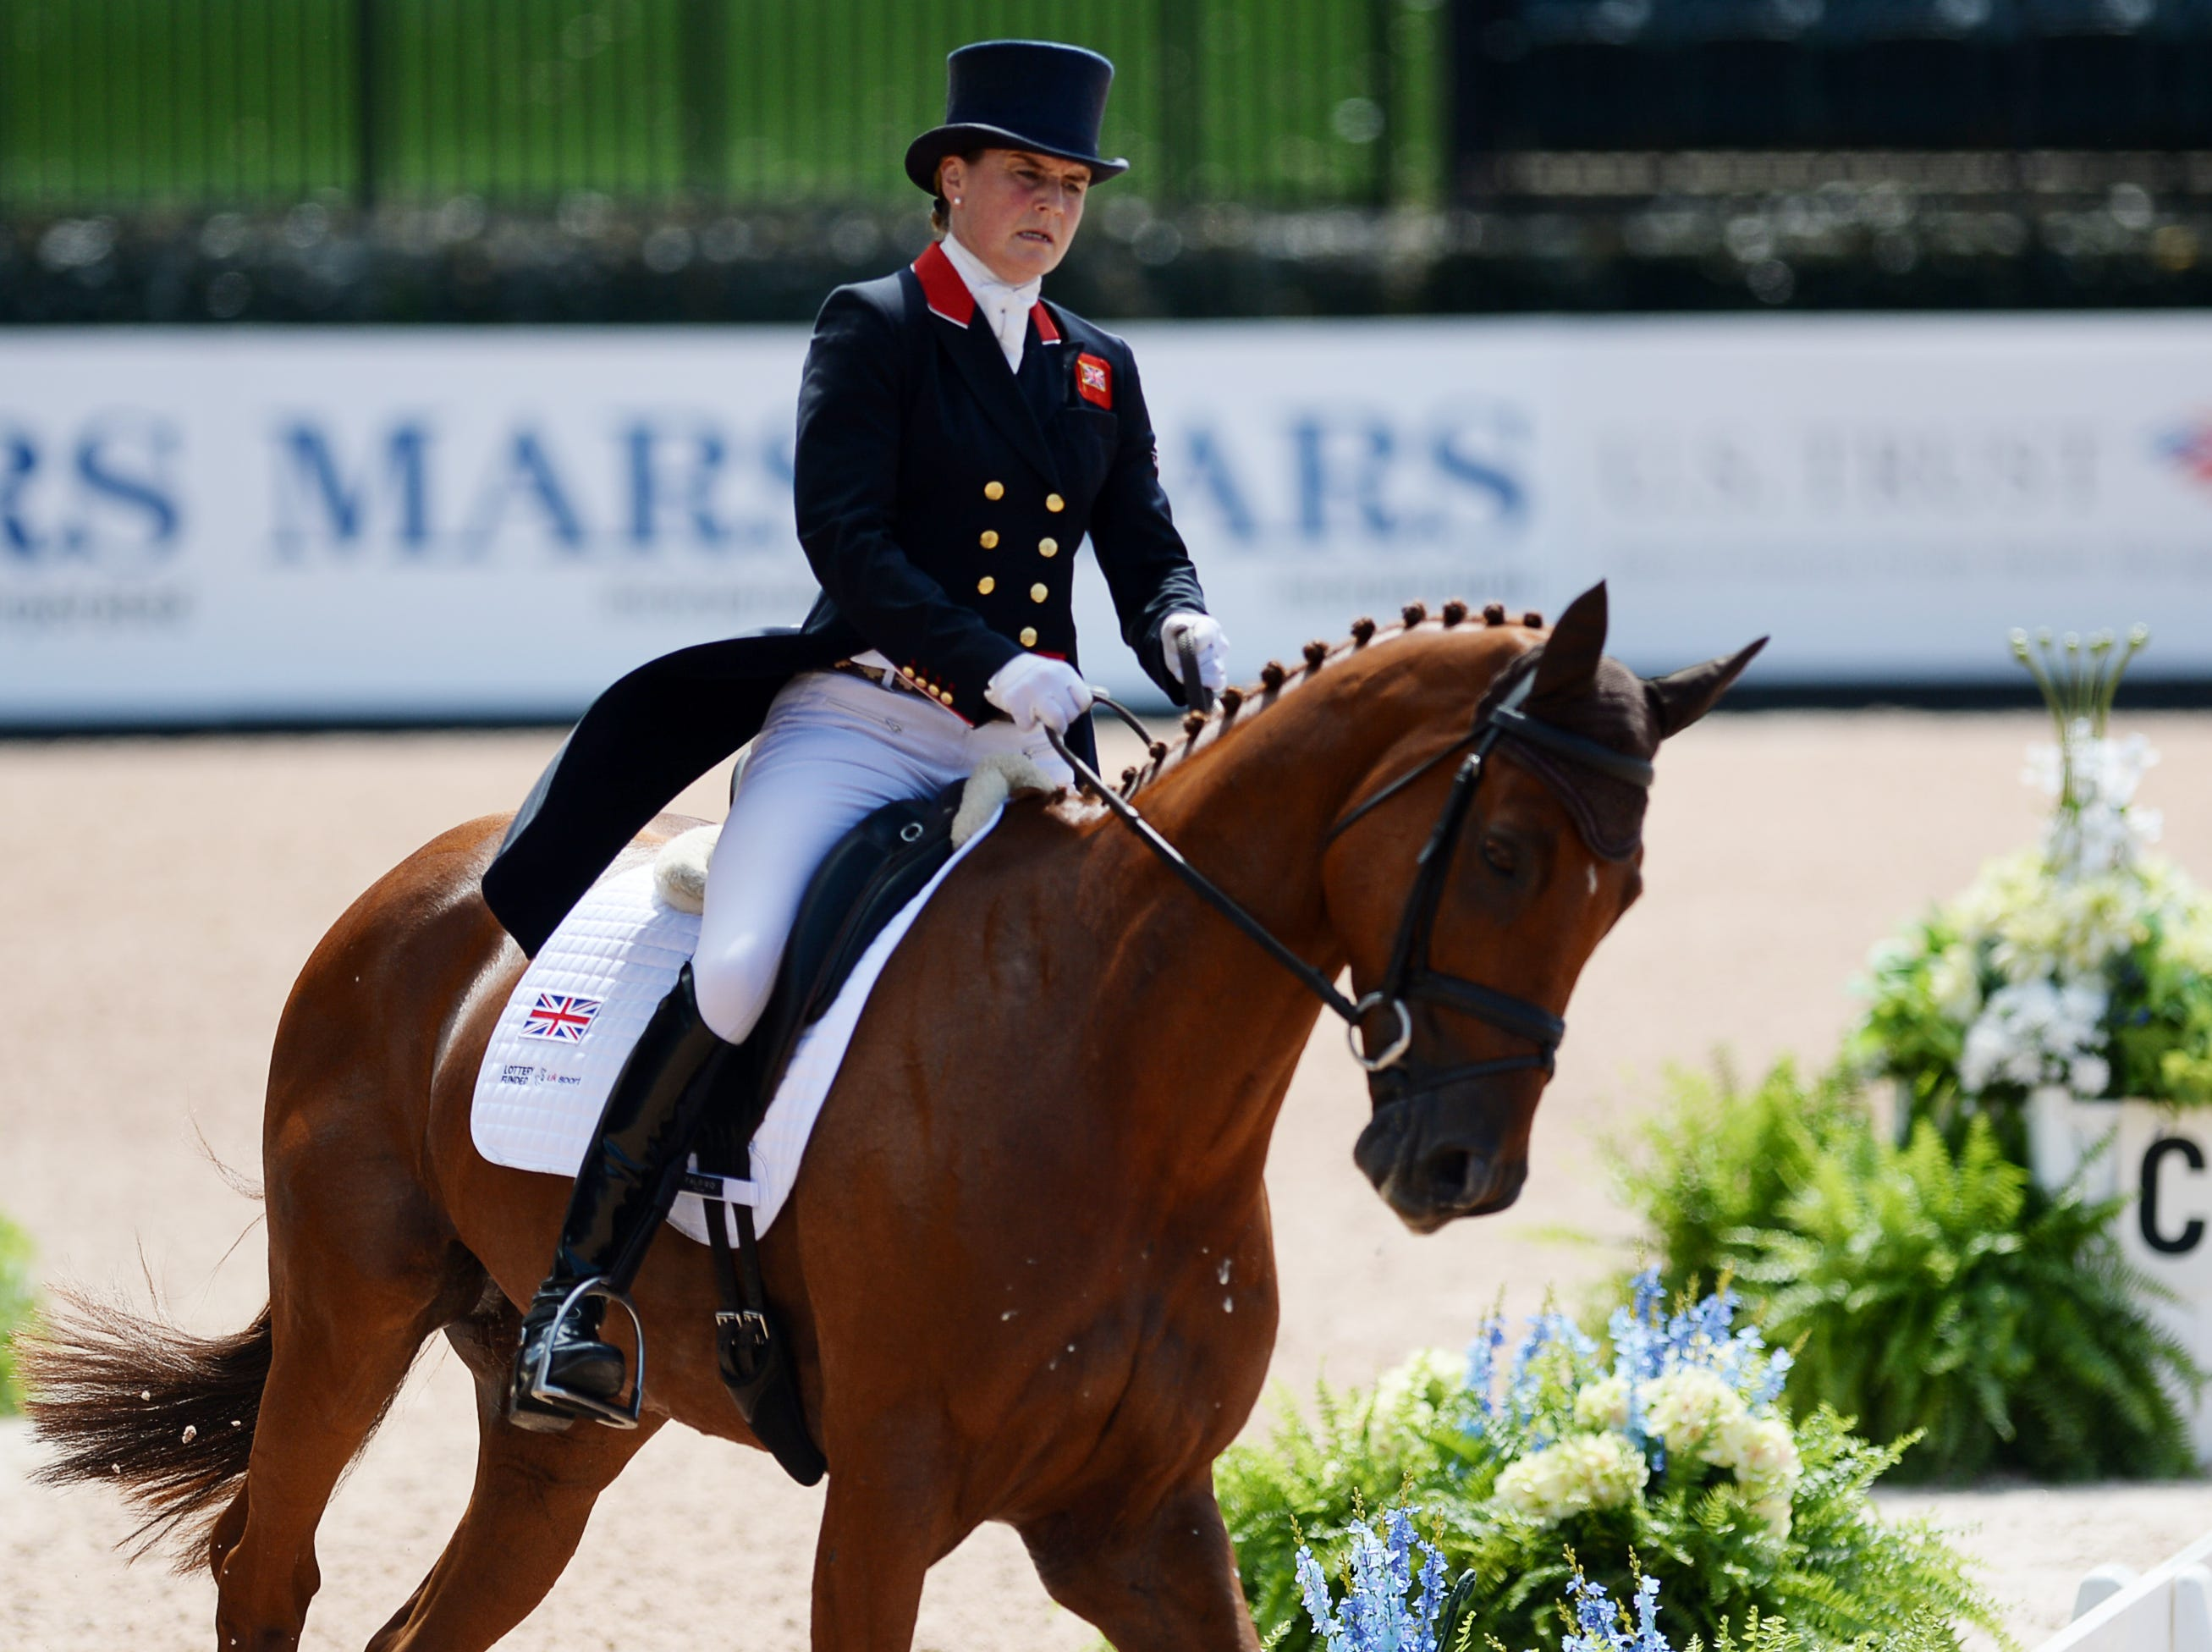 Piggy French rides Quarrycrest Echo as she competes for Great Britain in the dressage portion of the eventing competition at the World Equestrian Games in Tryon Sept. 13, 2018.